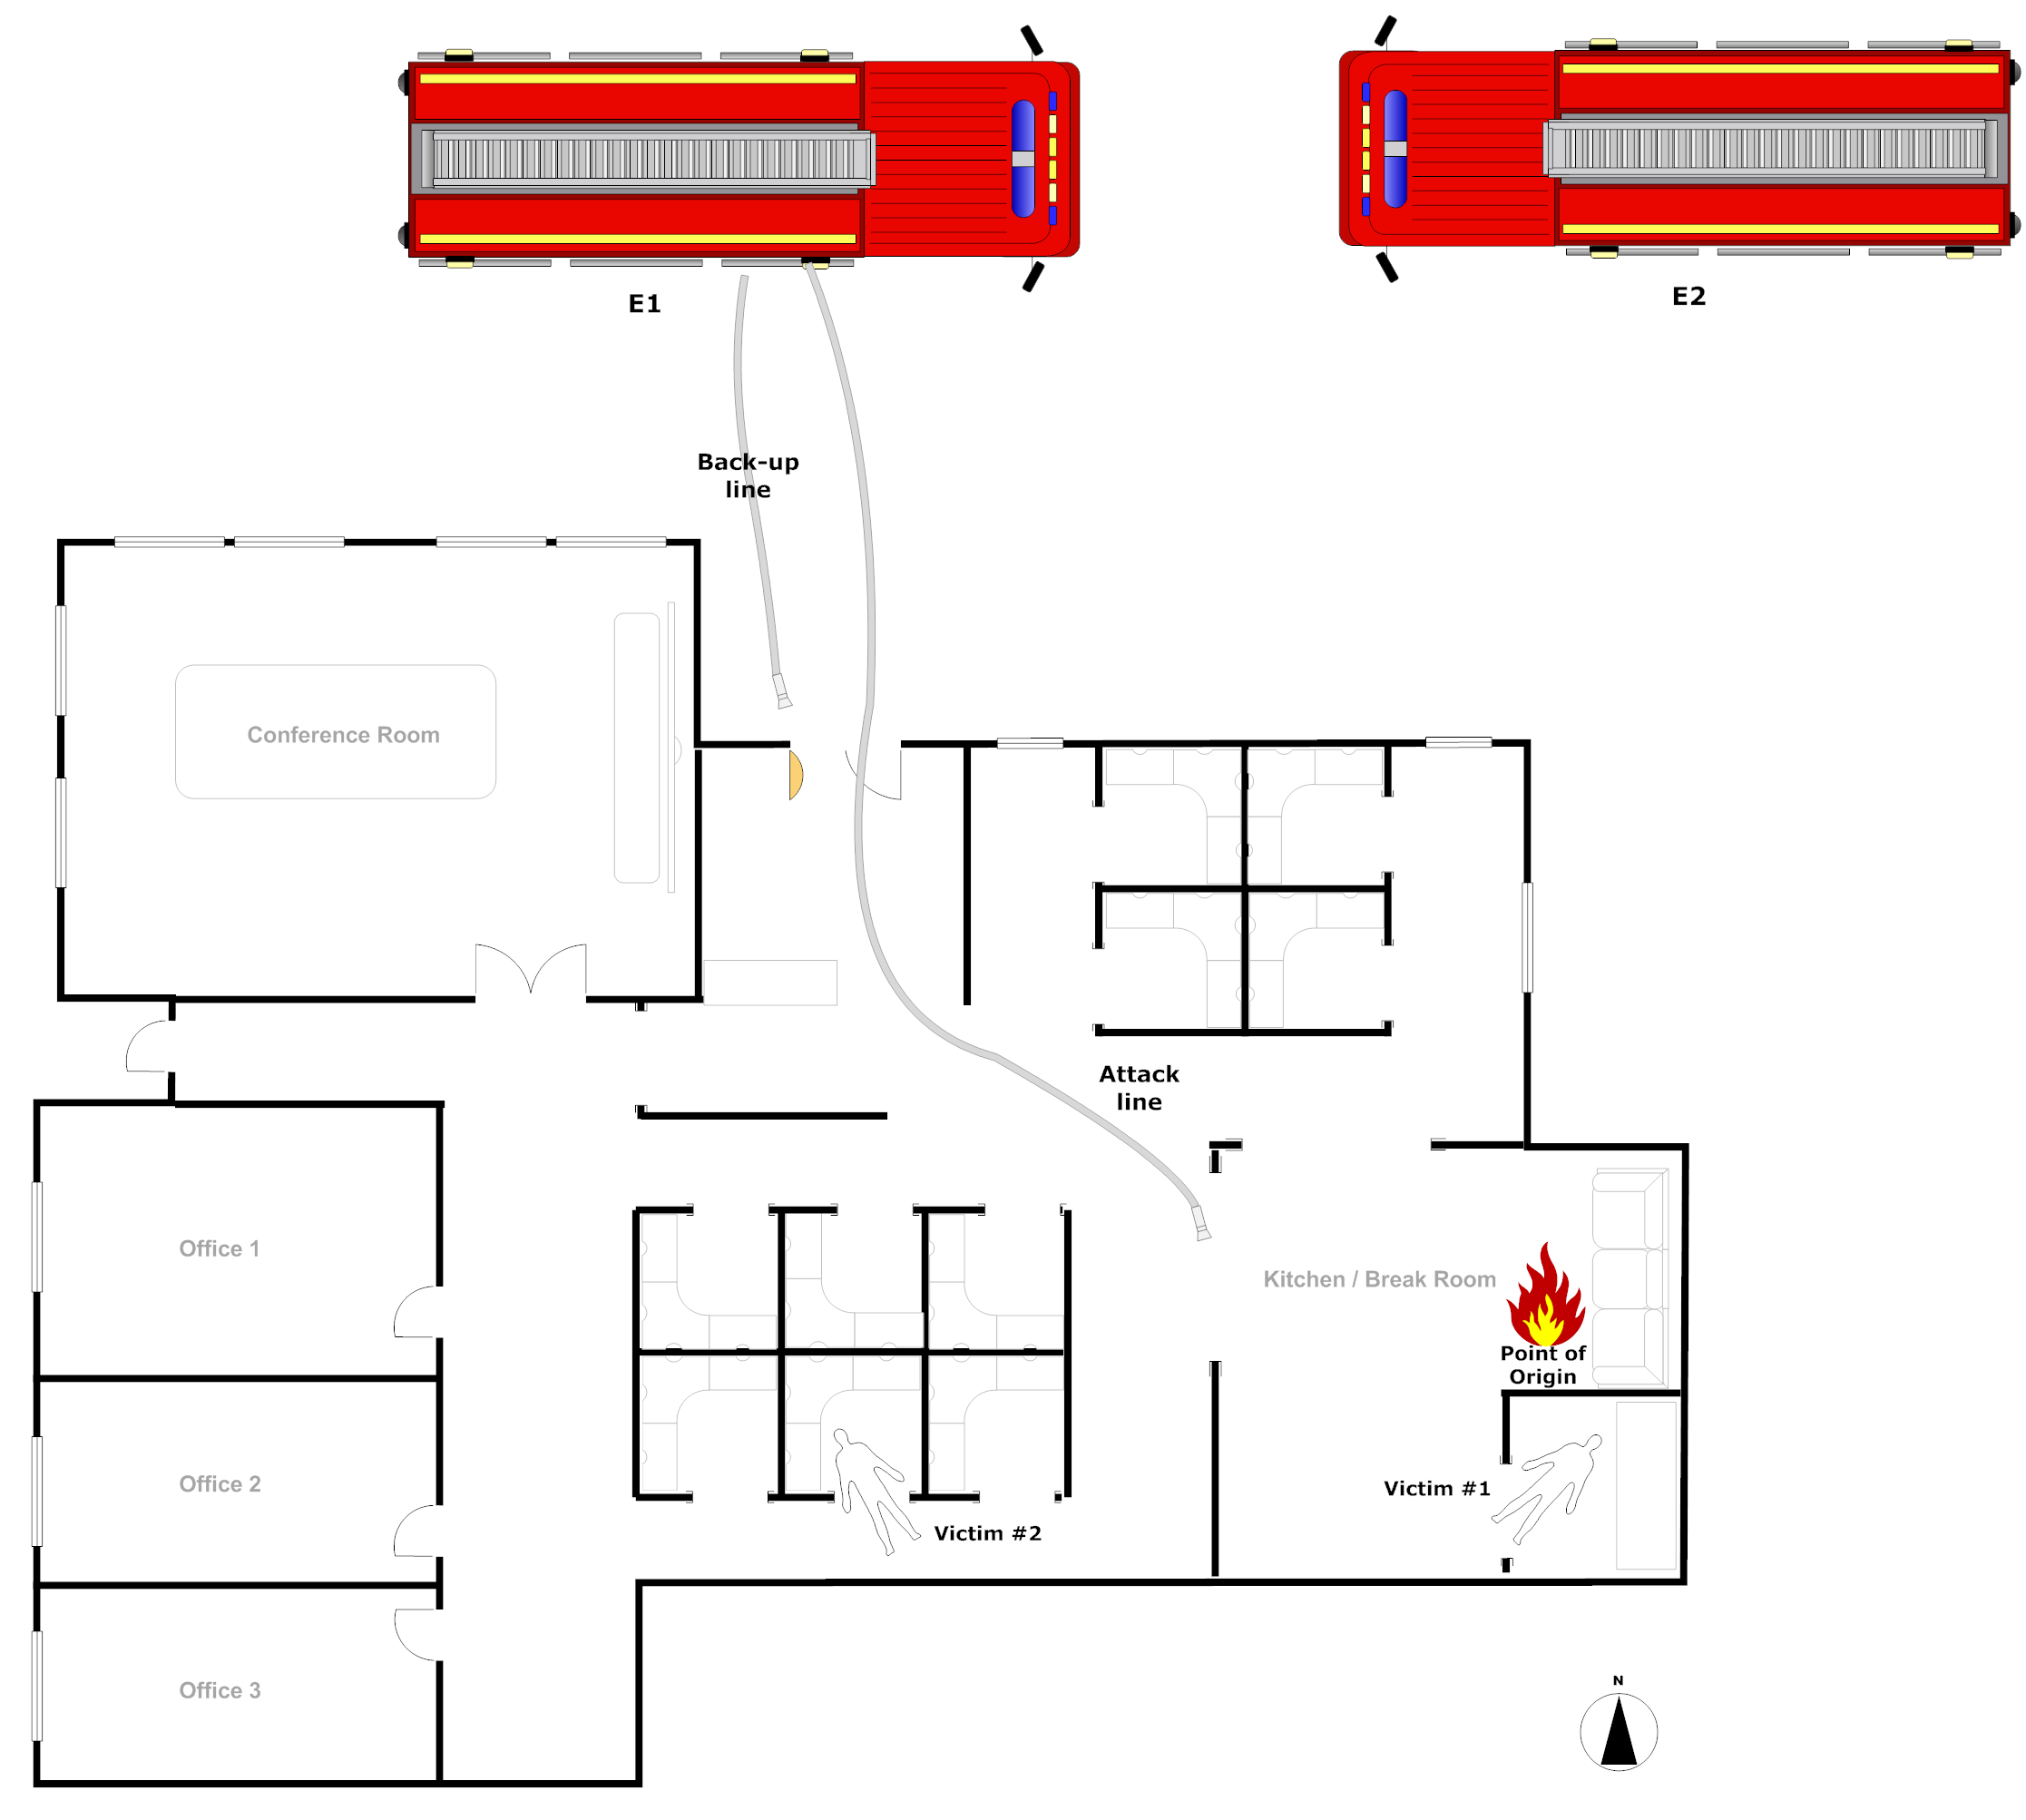 Fire scene diagram